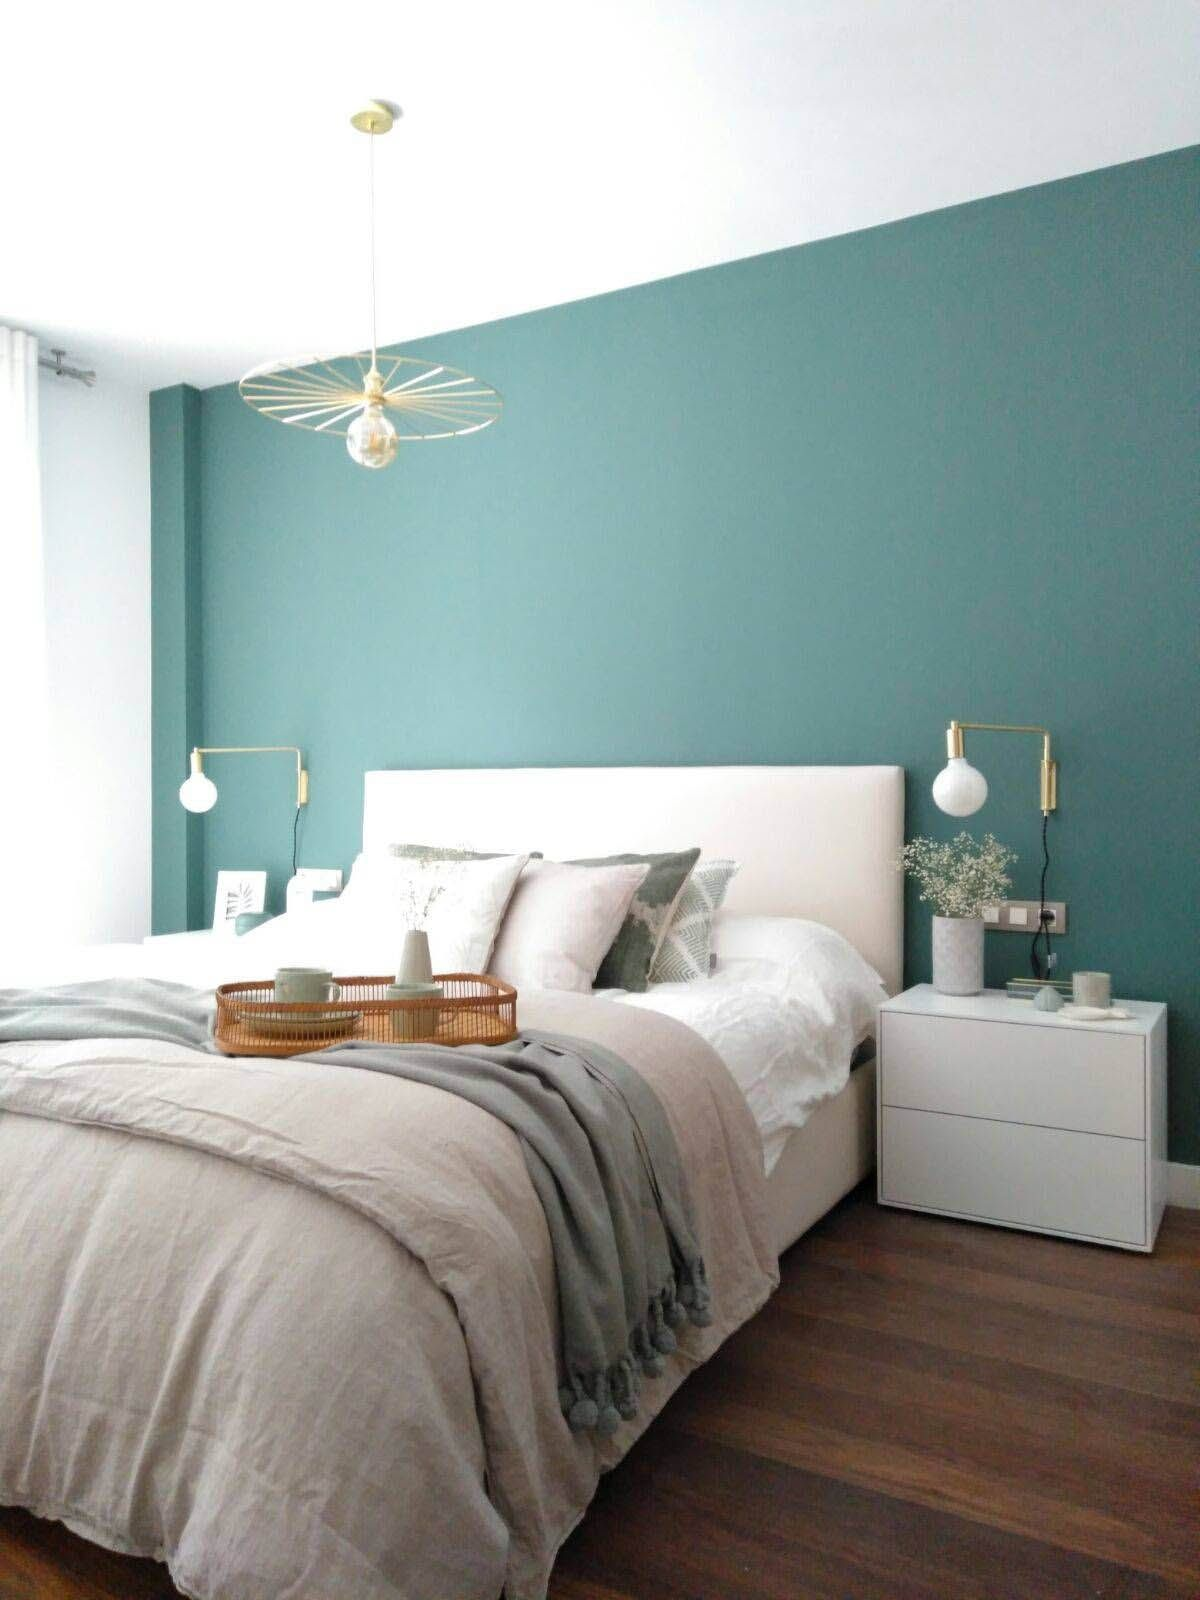 Bedroom Color Ideas That Will Create A Relaxing Oasis Best Bedroom Colors Beautiful Bedroom Colors Master Bedroom Colors